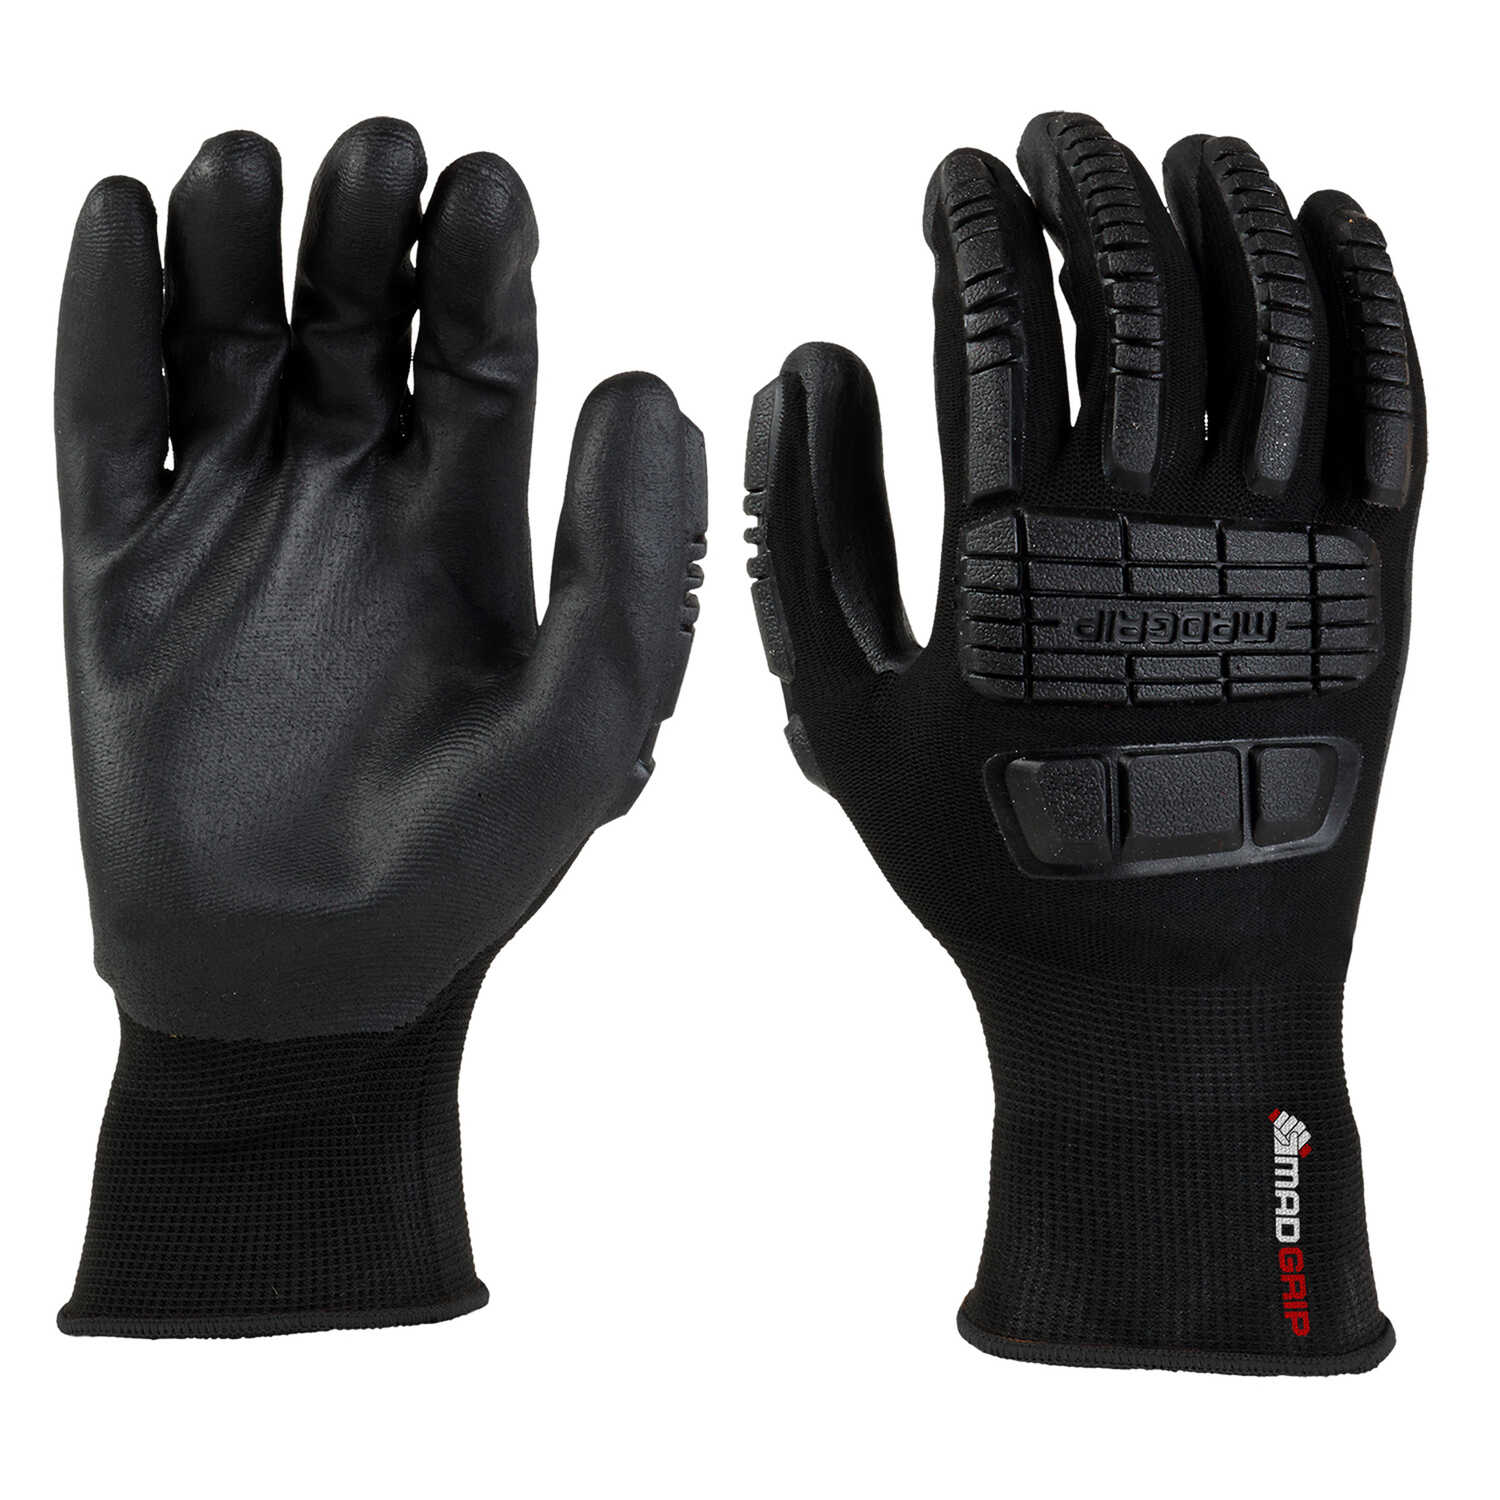 MadGrip  Ergo Impact  Unisex  Polyurethane  Coated  Work Gloves  Black  XL